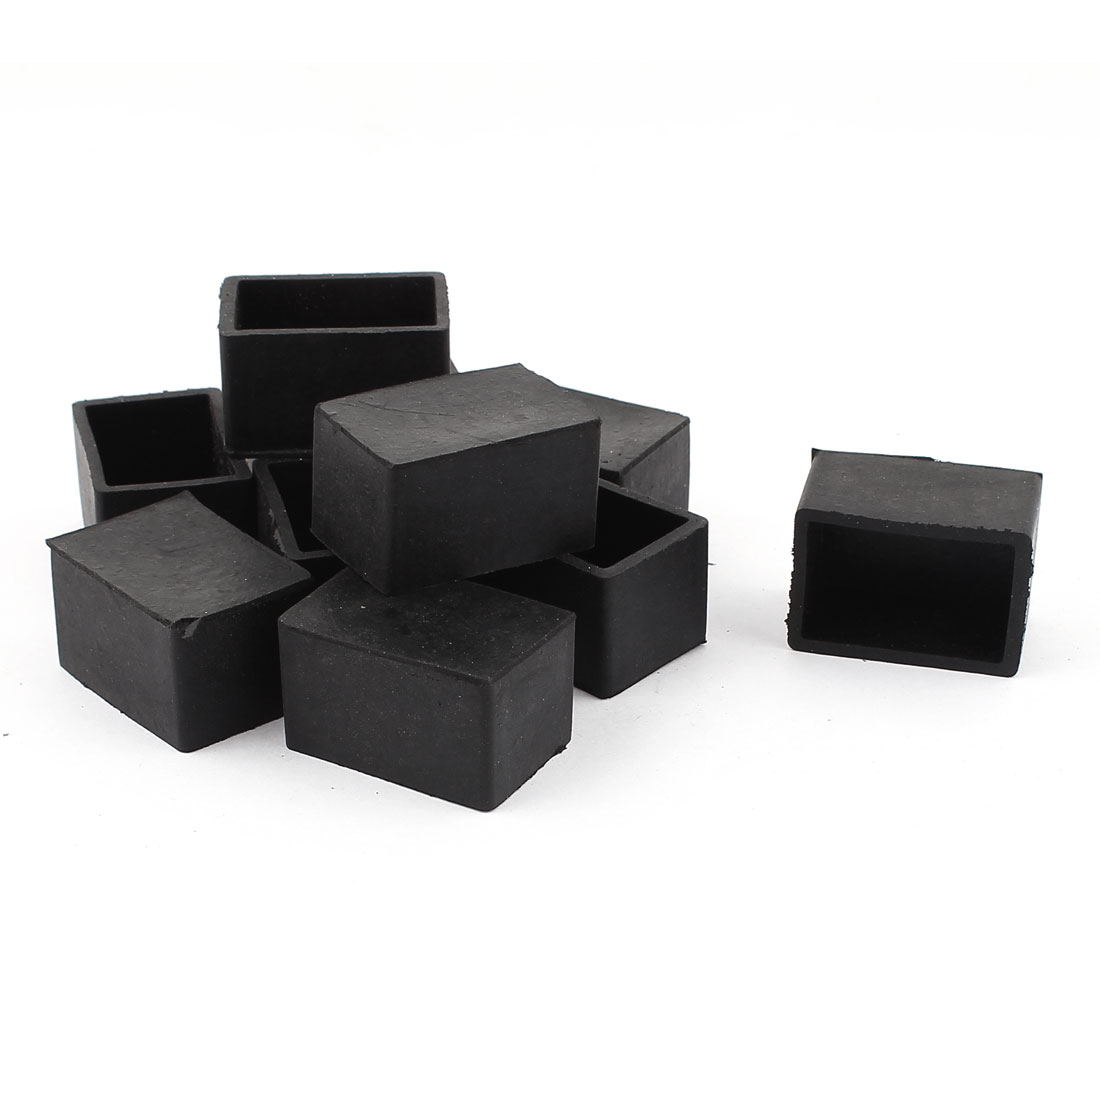 5 Pairs 25mm x 38mm Furniture Table Chair Leg Square Feet Cover Cap Pads For Abrasion Black